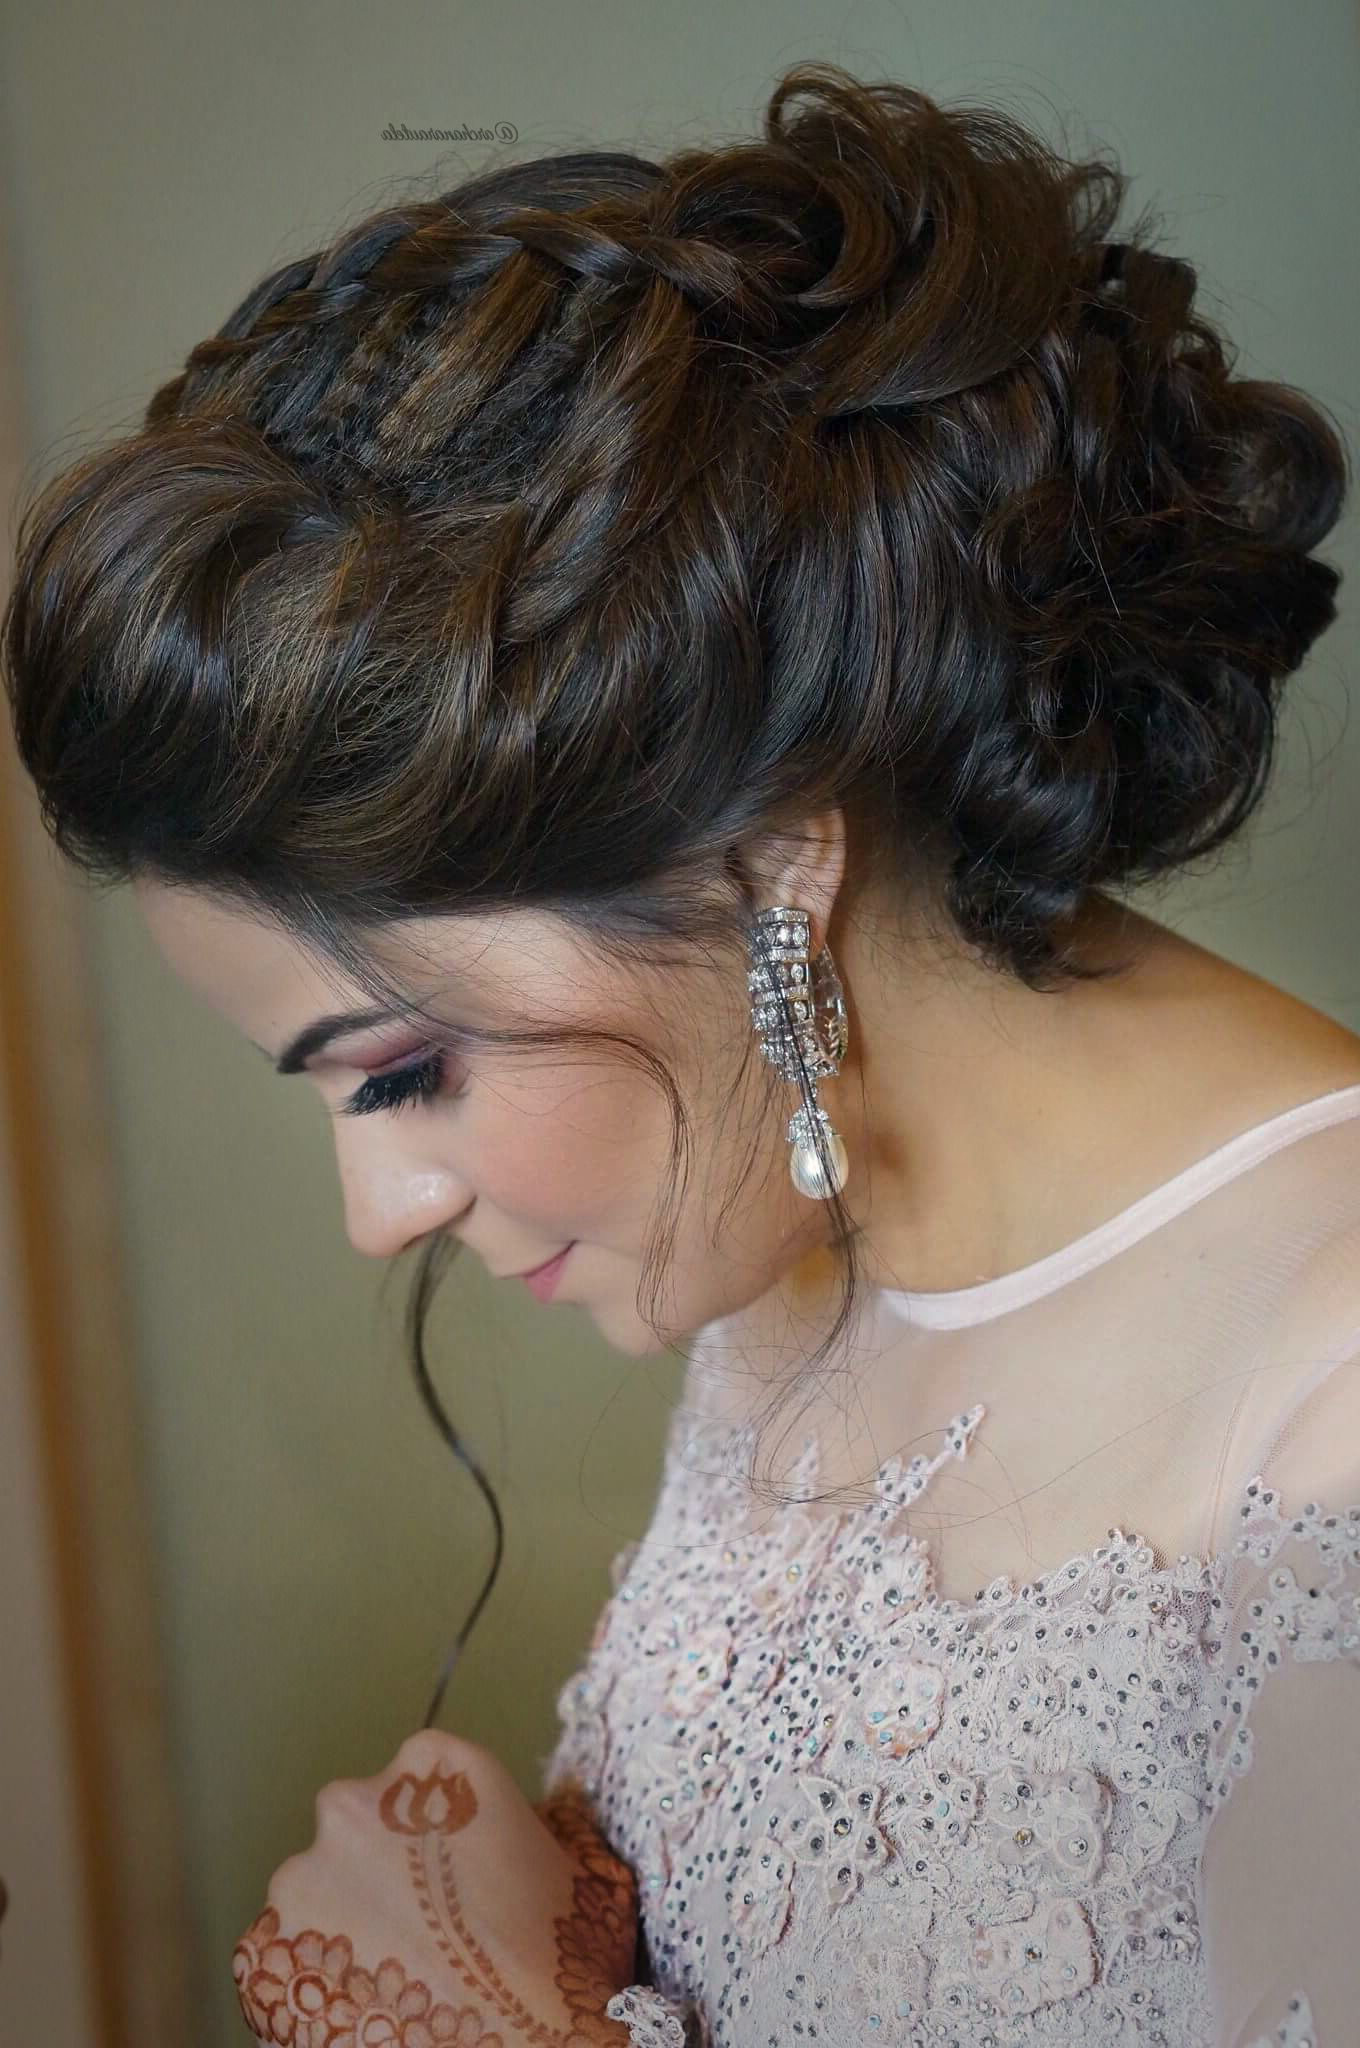 Nidhi👰🏼💍 Looking Gorgeous With Braided Messy Bun 💍💄 Hair Intended For Newest Bridal Mid Bun Hairstyles With A Bouffant (View 6 of 20)